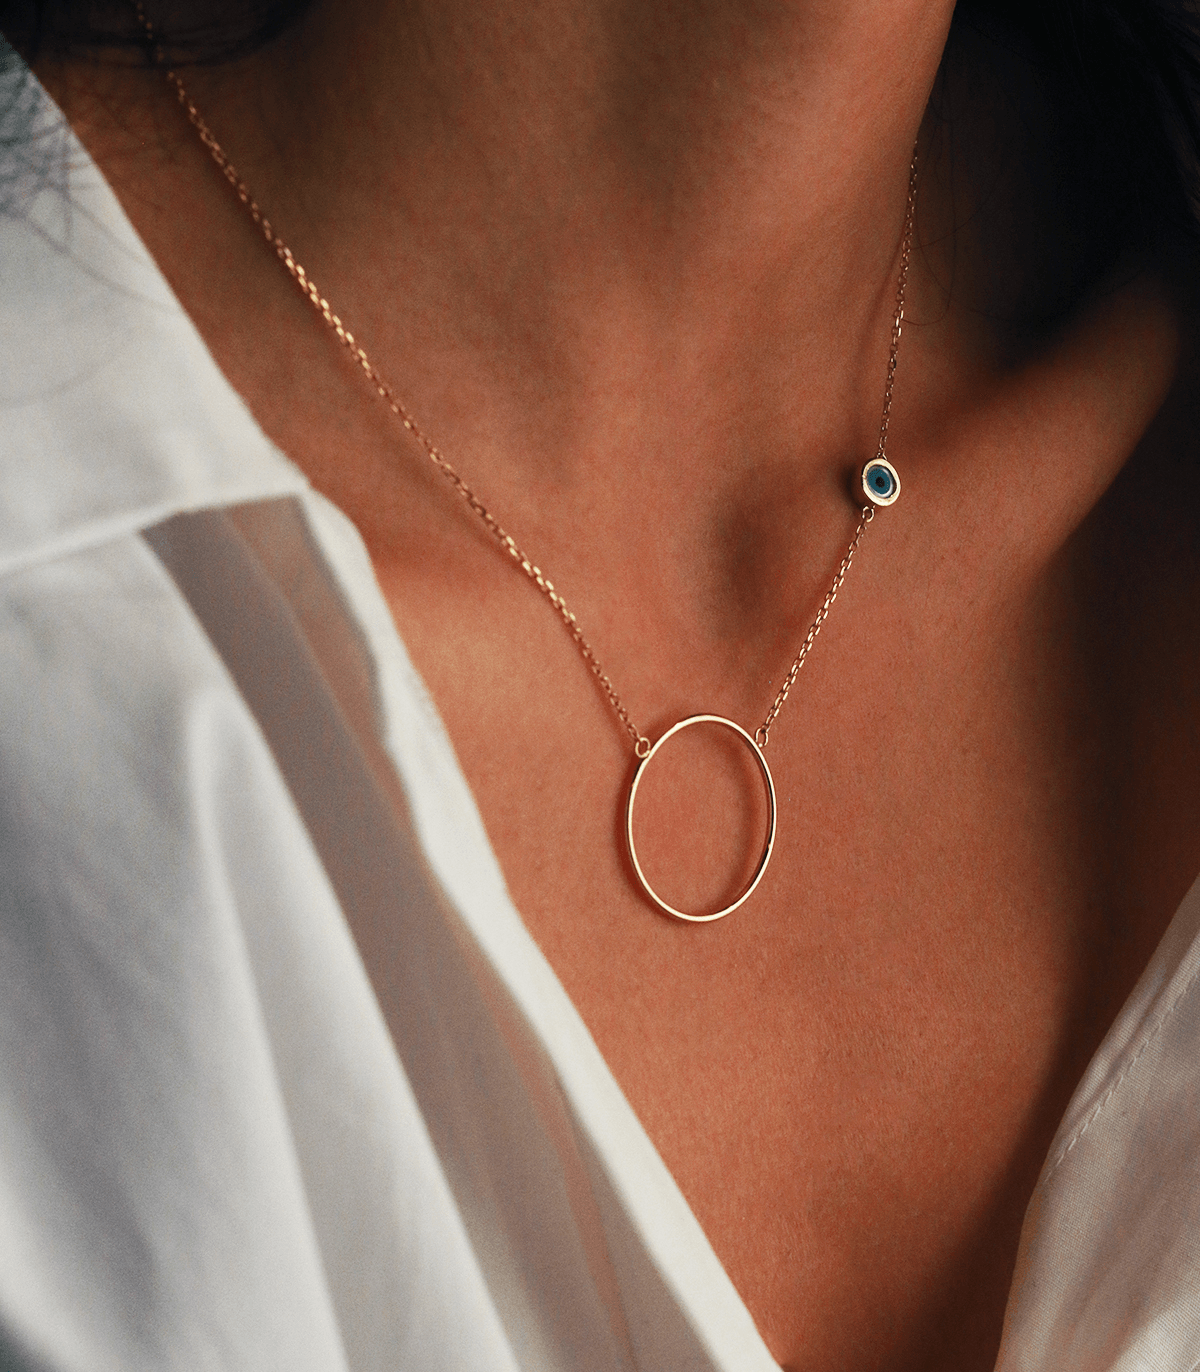 The Eye Ring Necklace